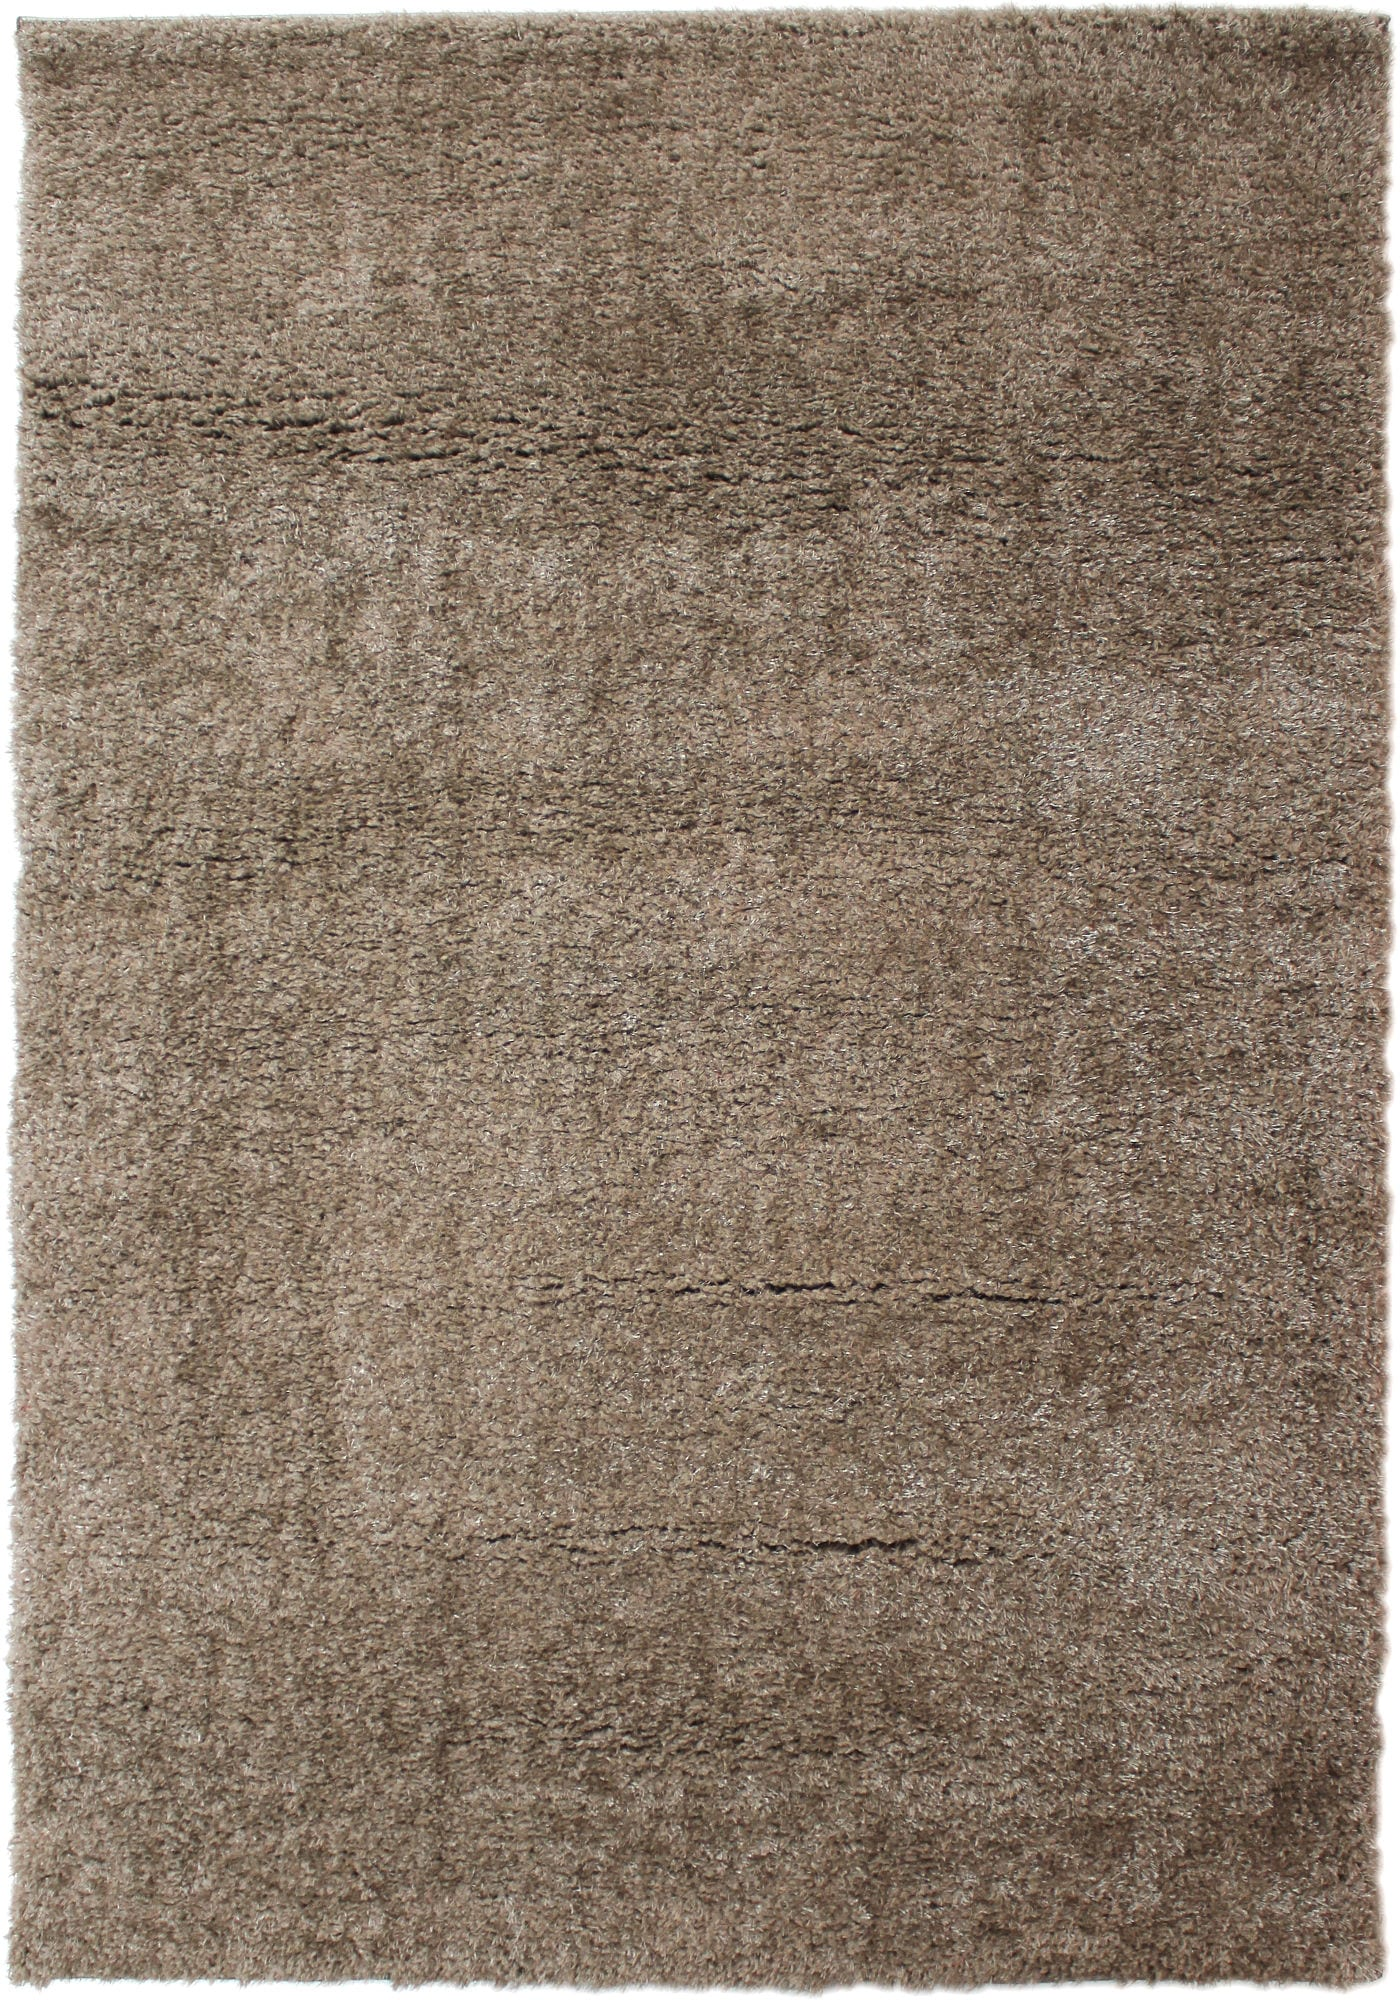 Velvet Rug By Flair Rugs Colour Natural